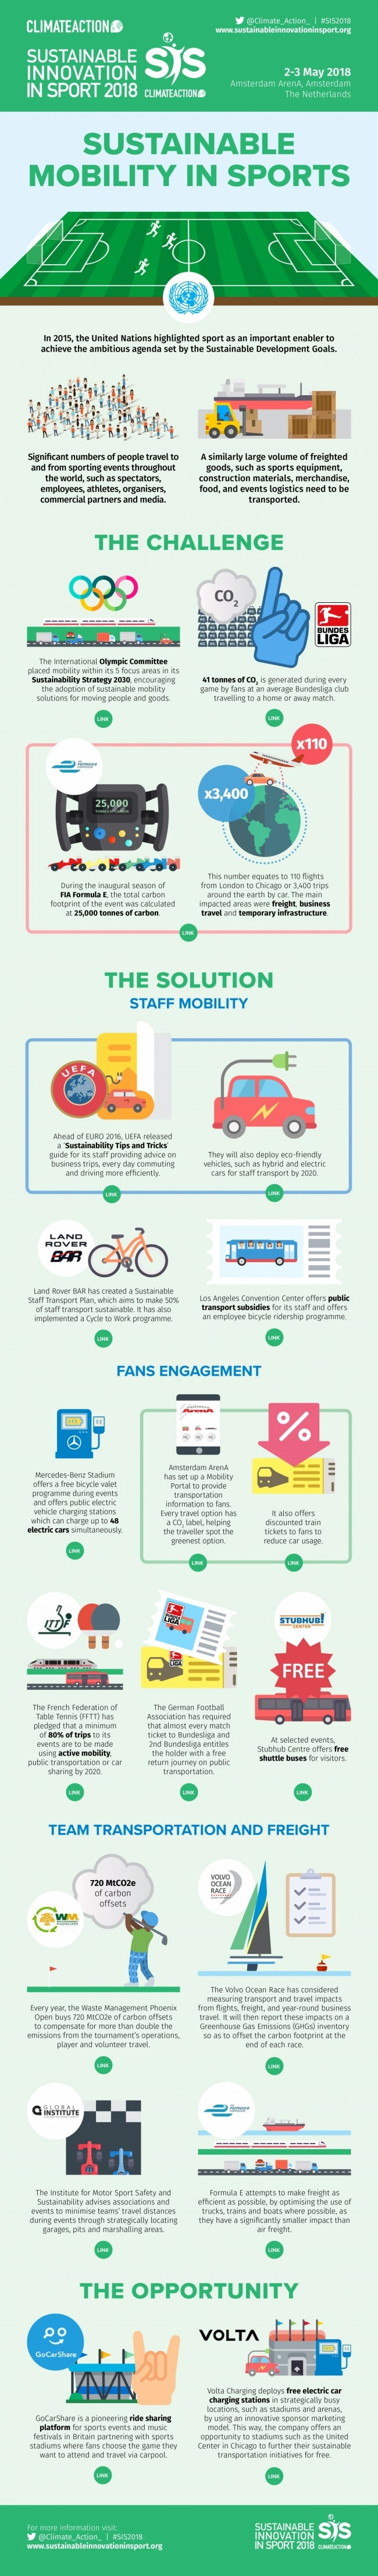 Climate_News_Infographic_SIS_18_Infographic-Sustainable_Mobility_FINAL_003.jpg